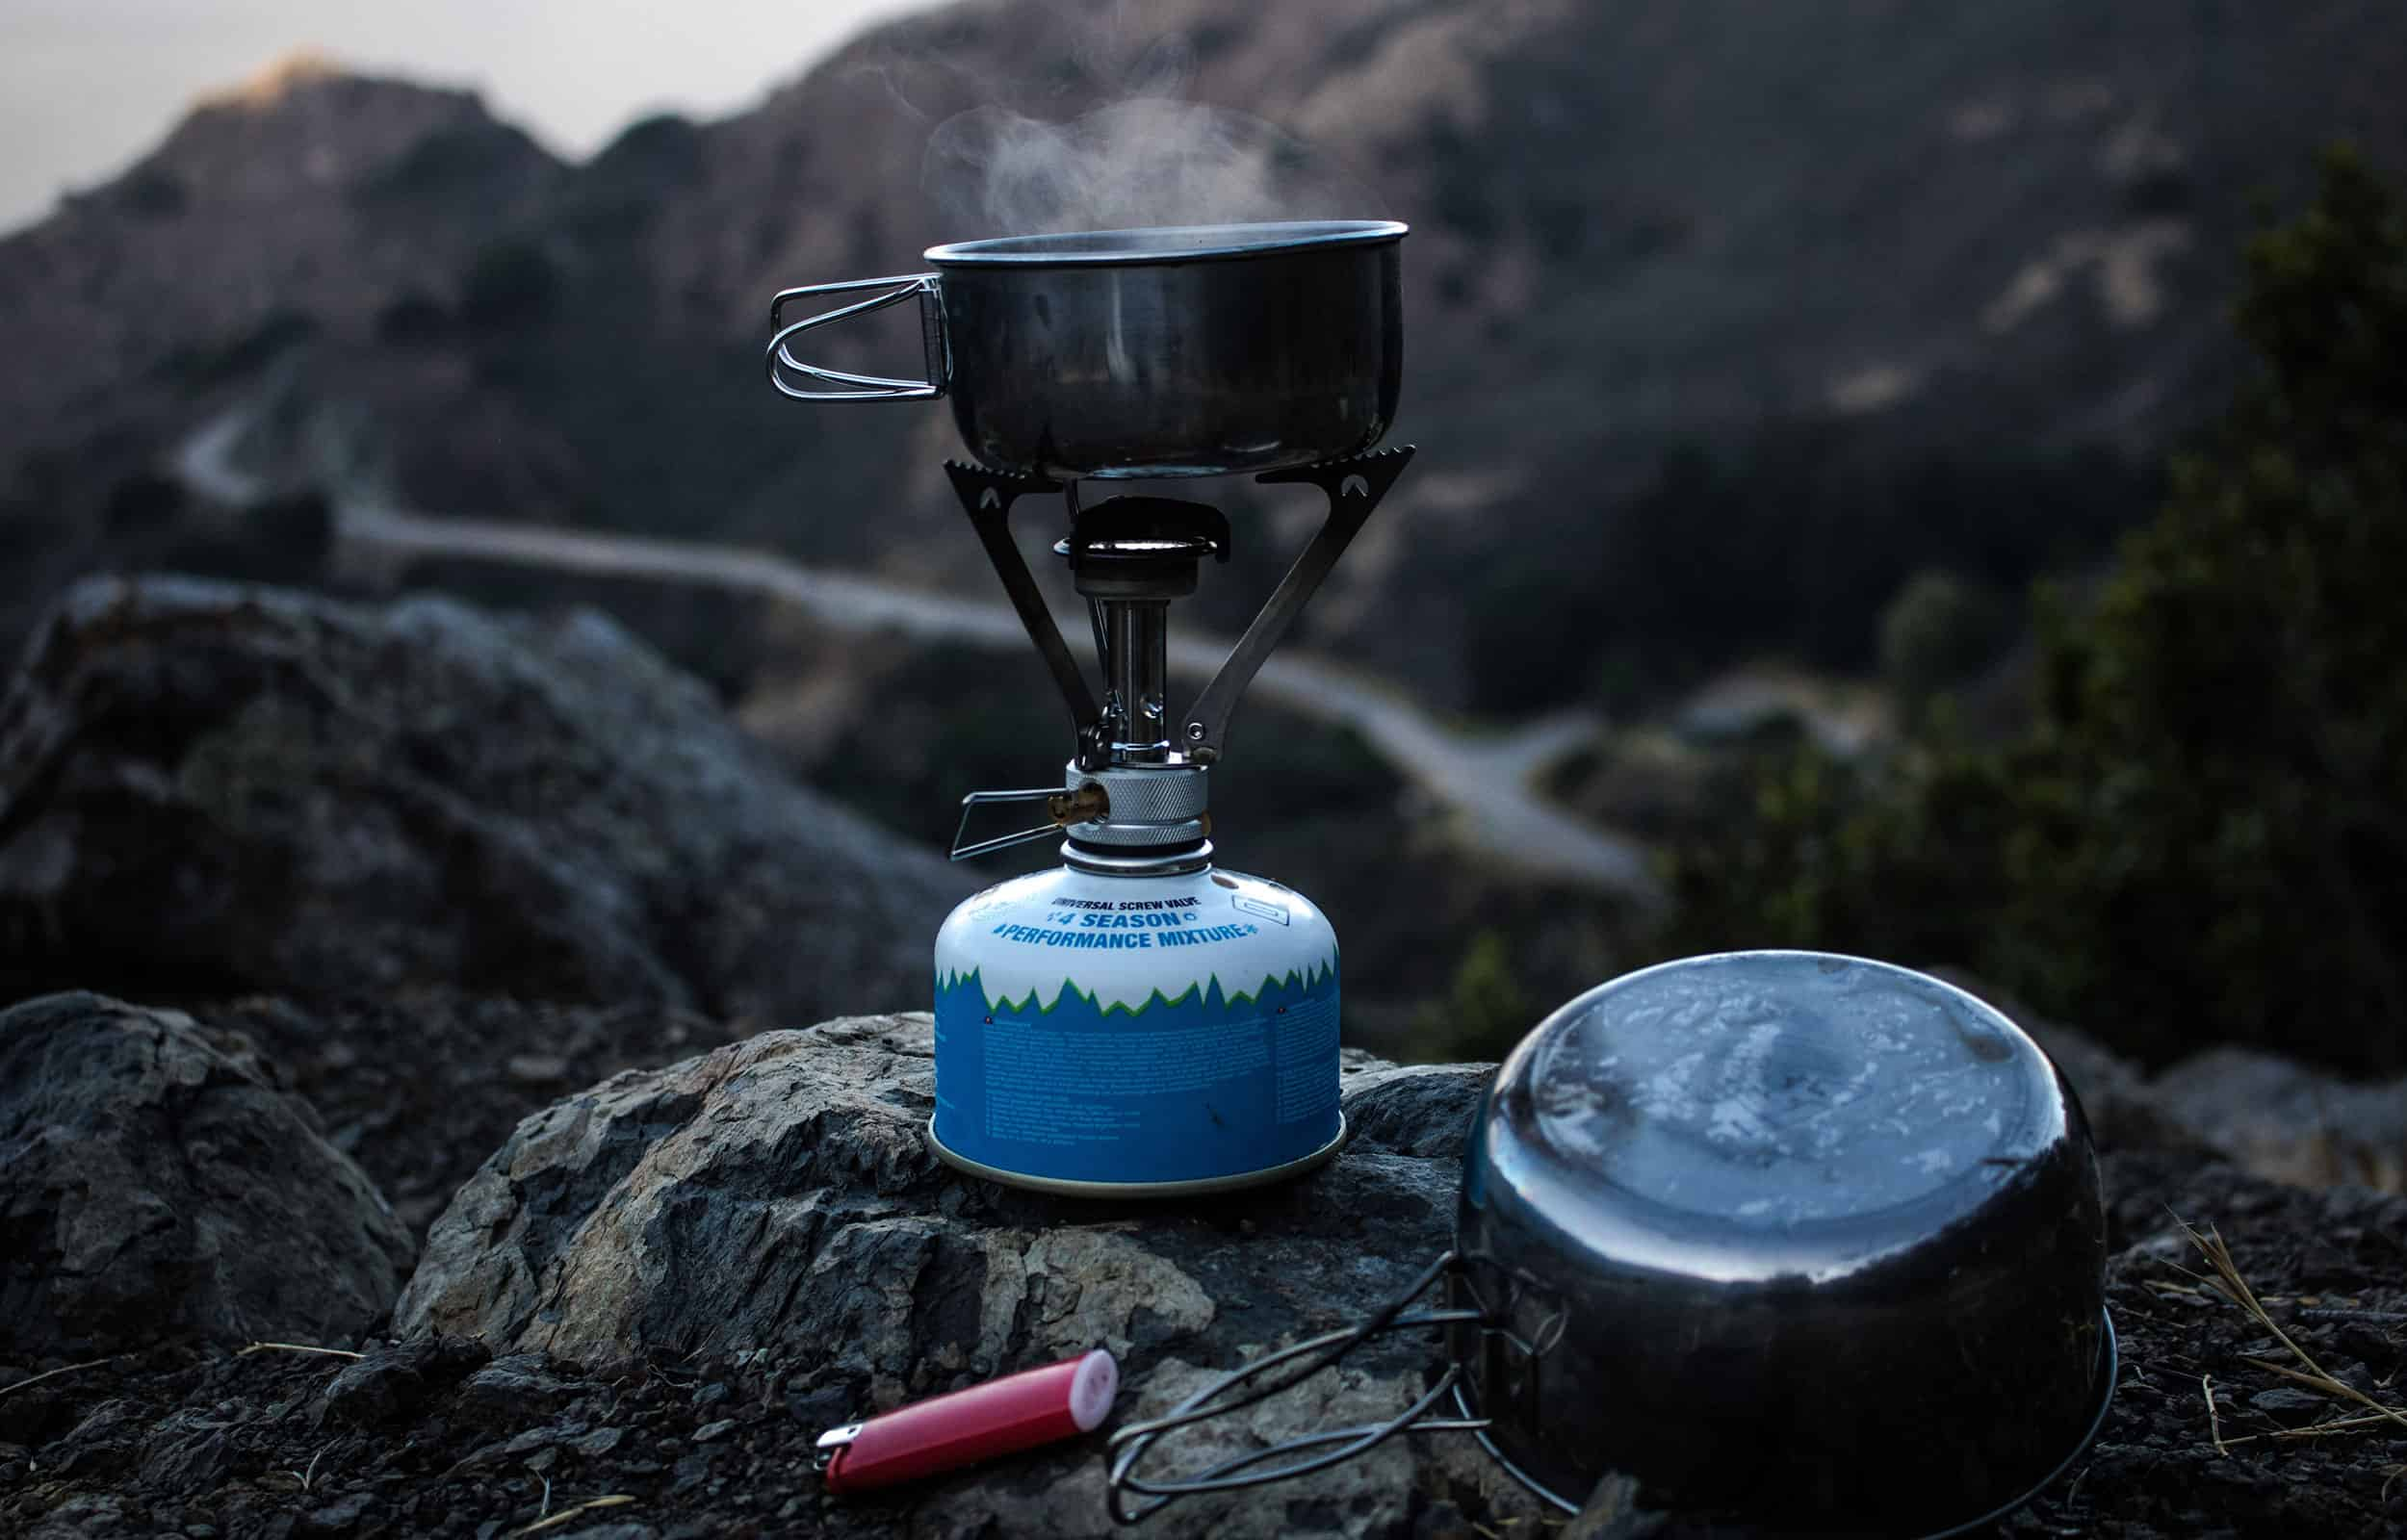 camping stove cooking food